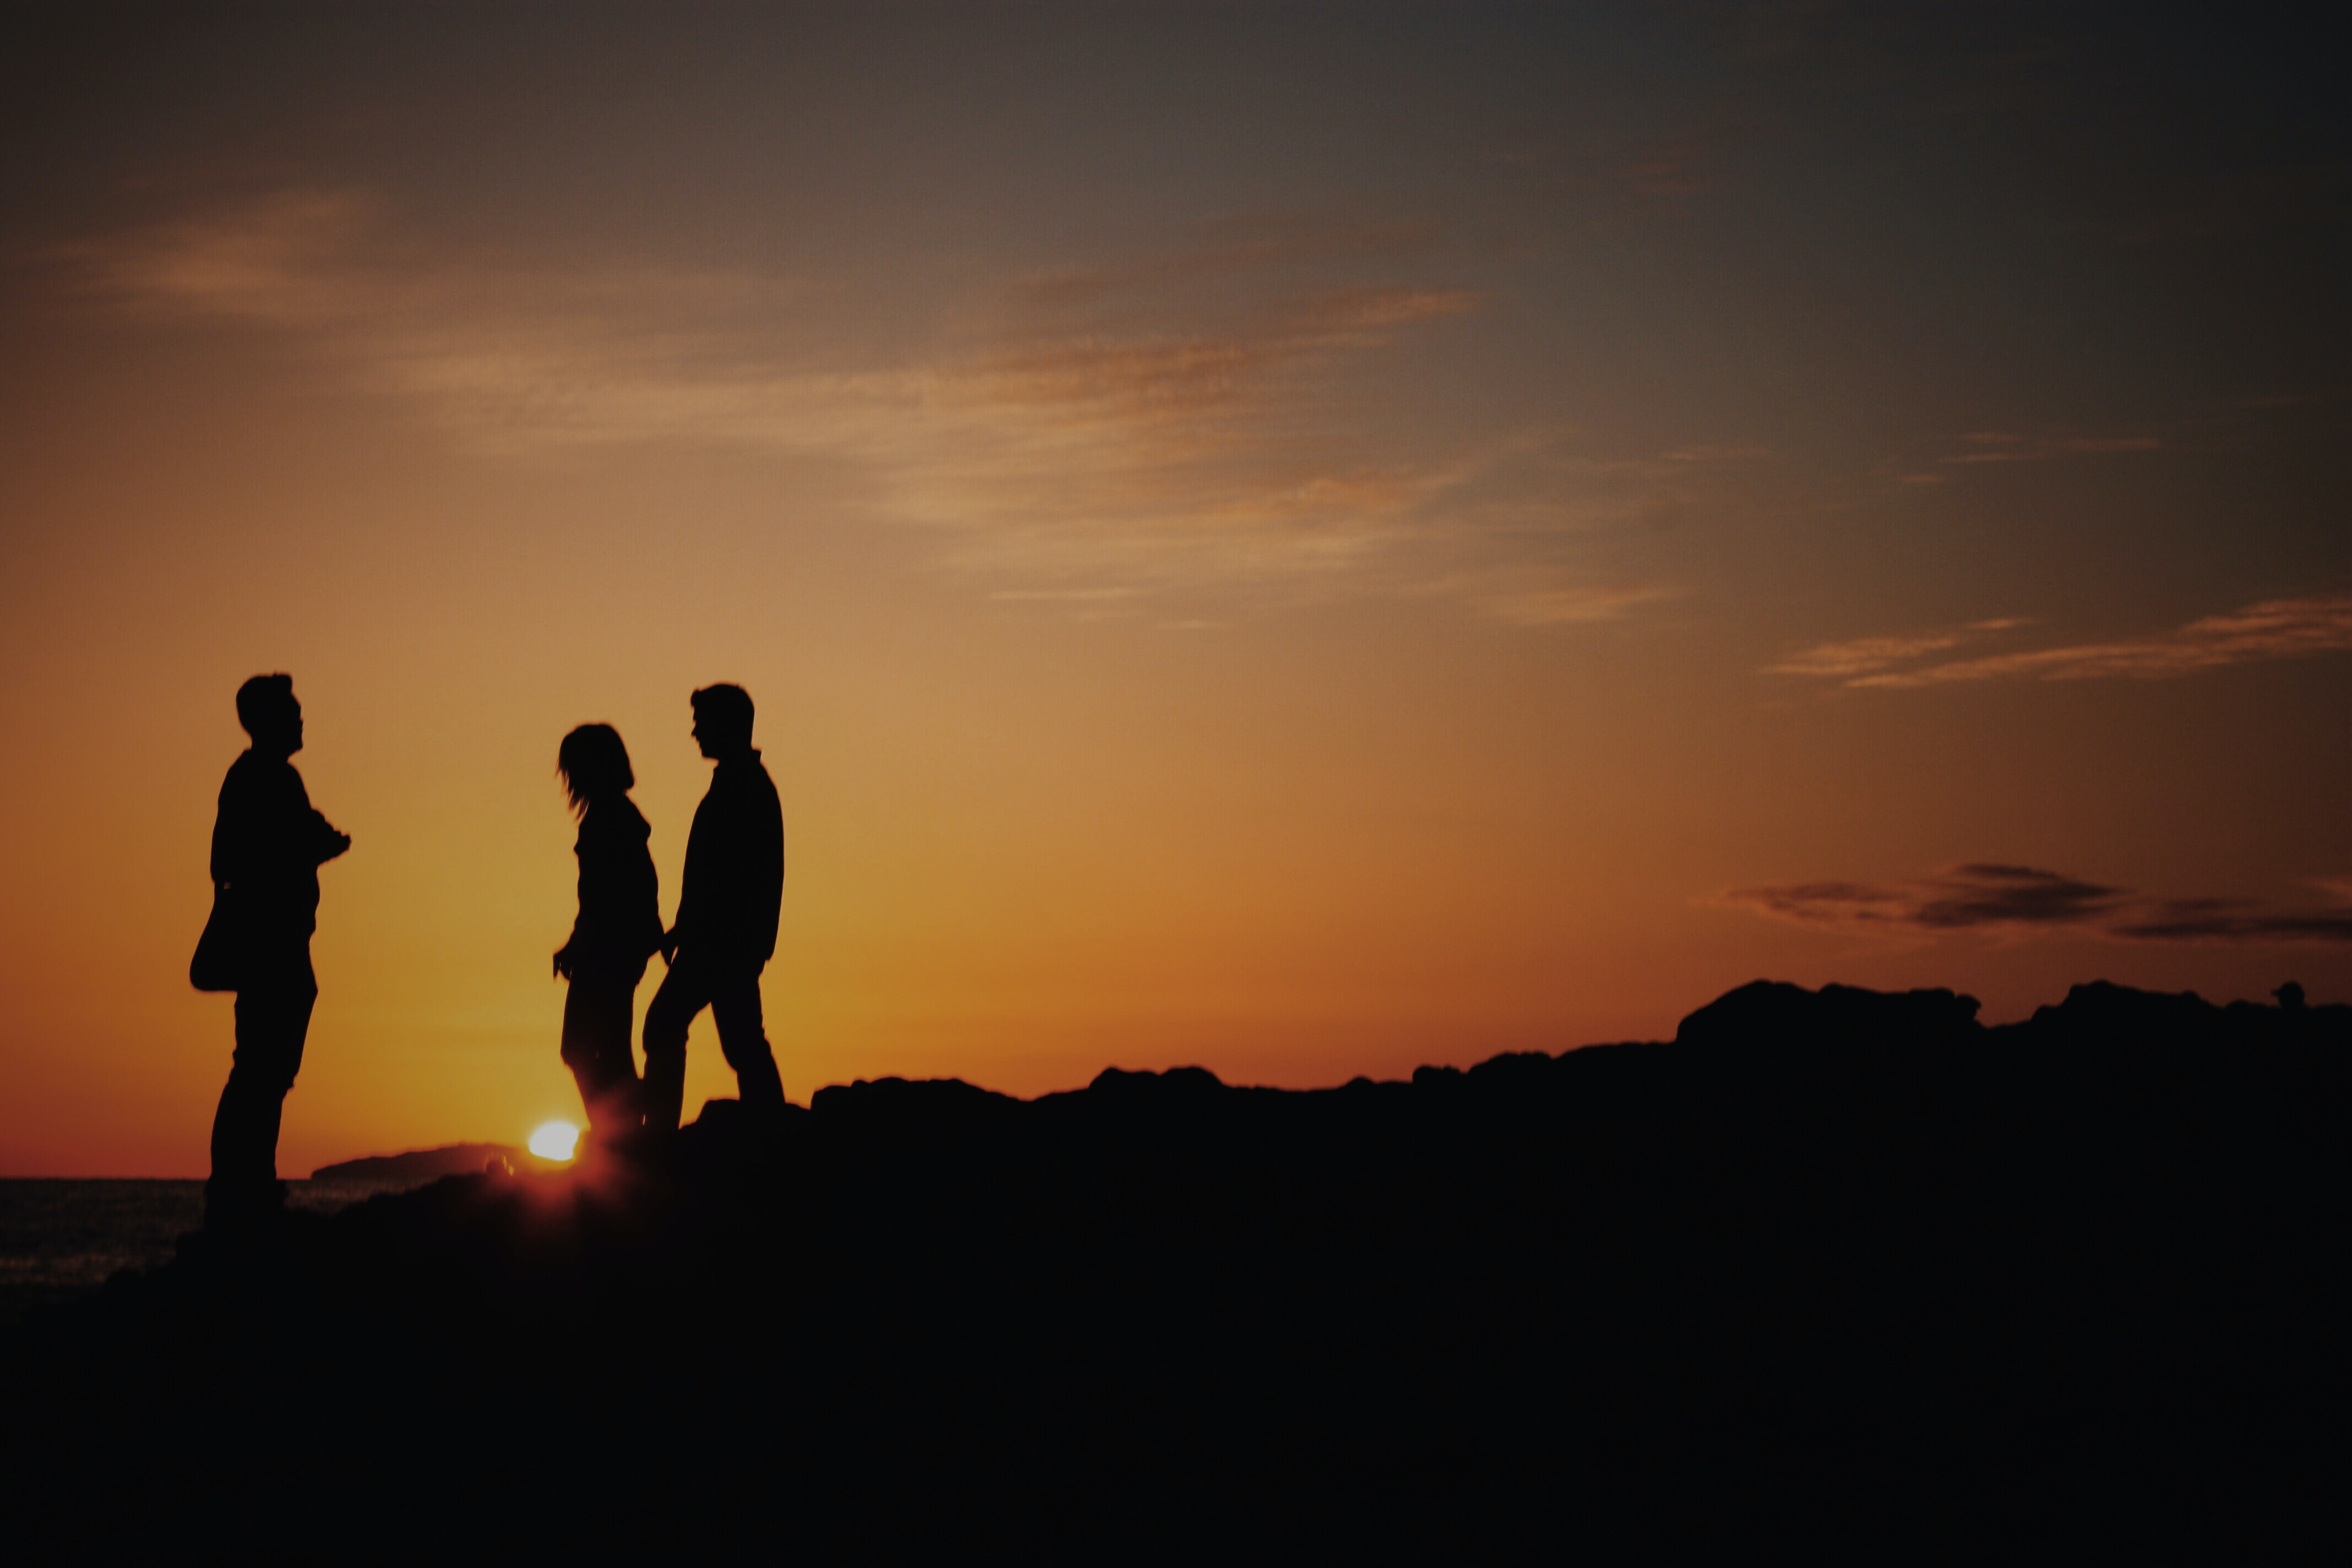 silhouette of two men and one woman on mountain